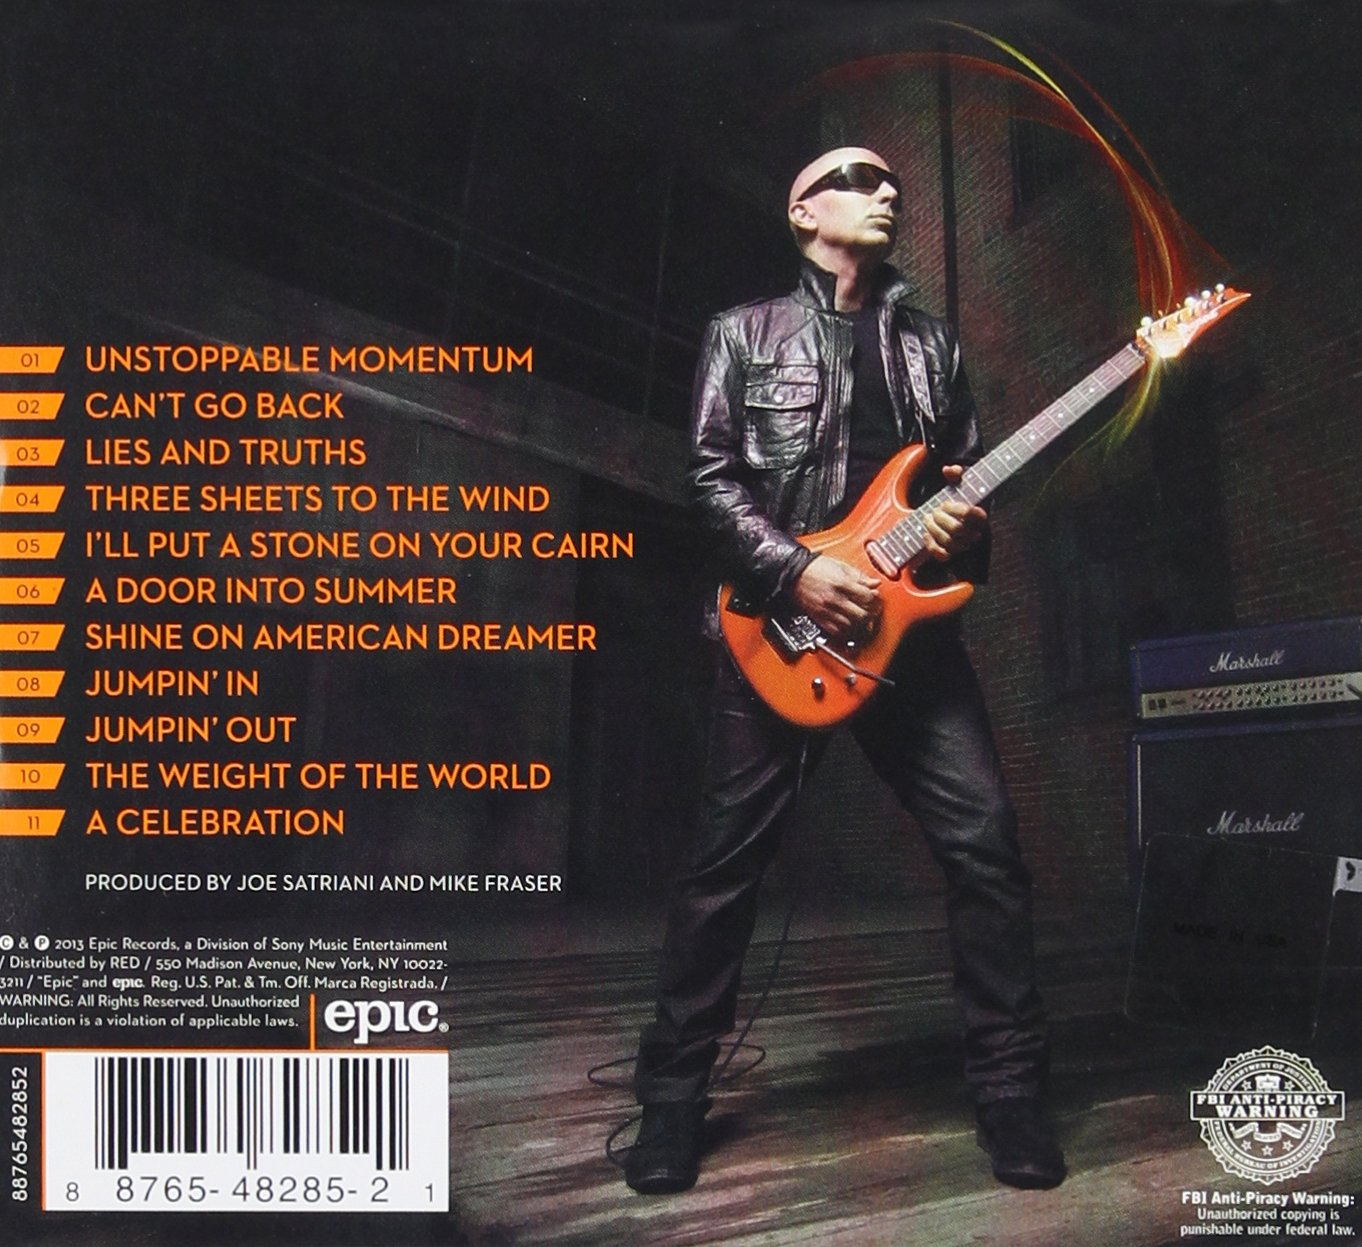 Unstoppable Momentum: Joe Satriani: Amazon.es: Música